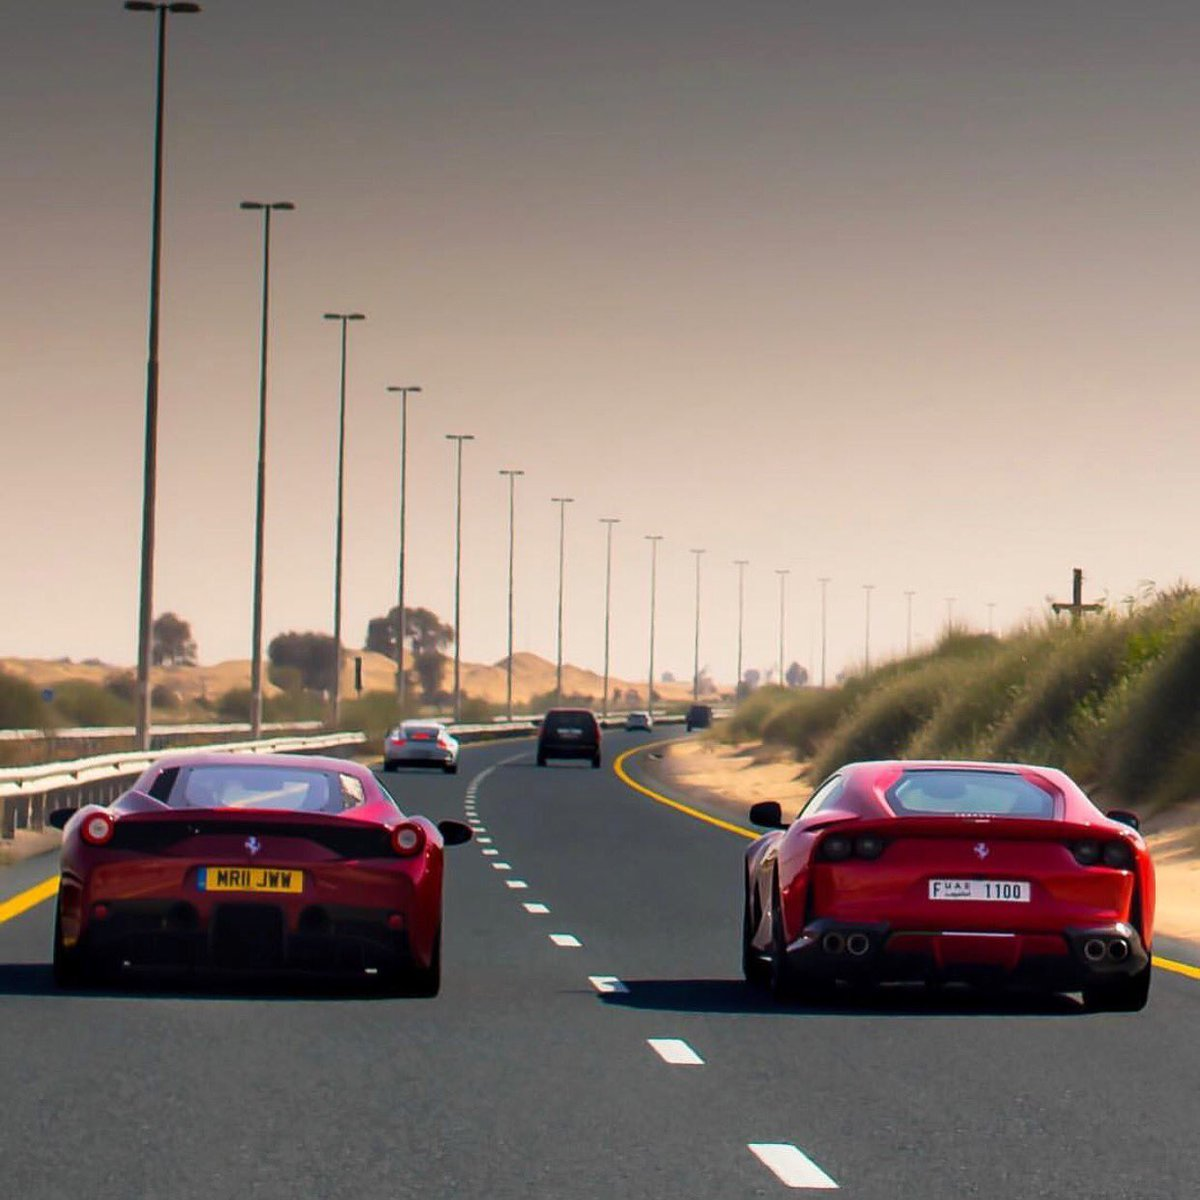 Mrjww On Twitter Another Day In Dubai With The Gbr Speciale Resulting In Some Incredible Memories Mrjww Ferrari